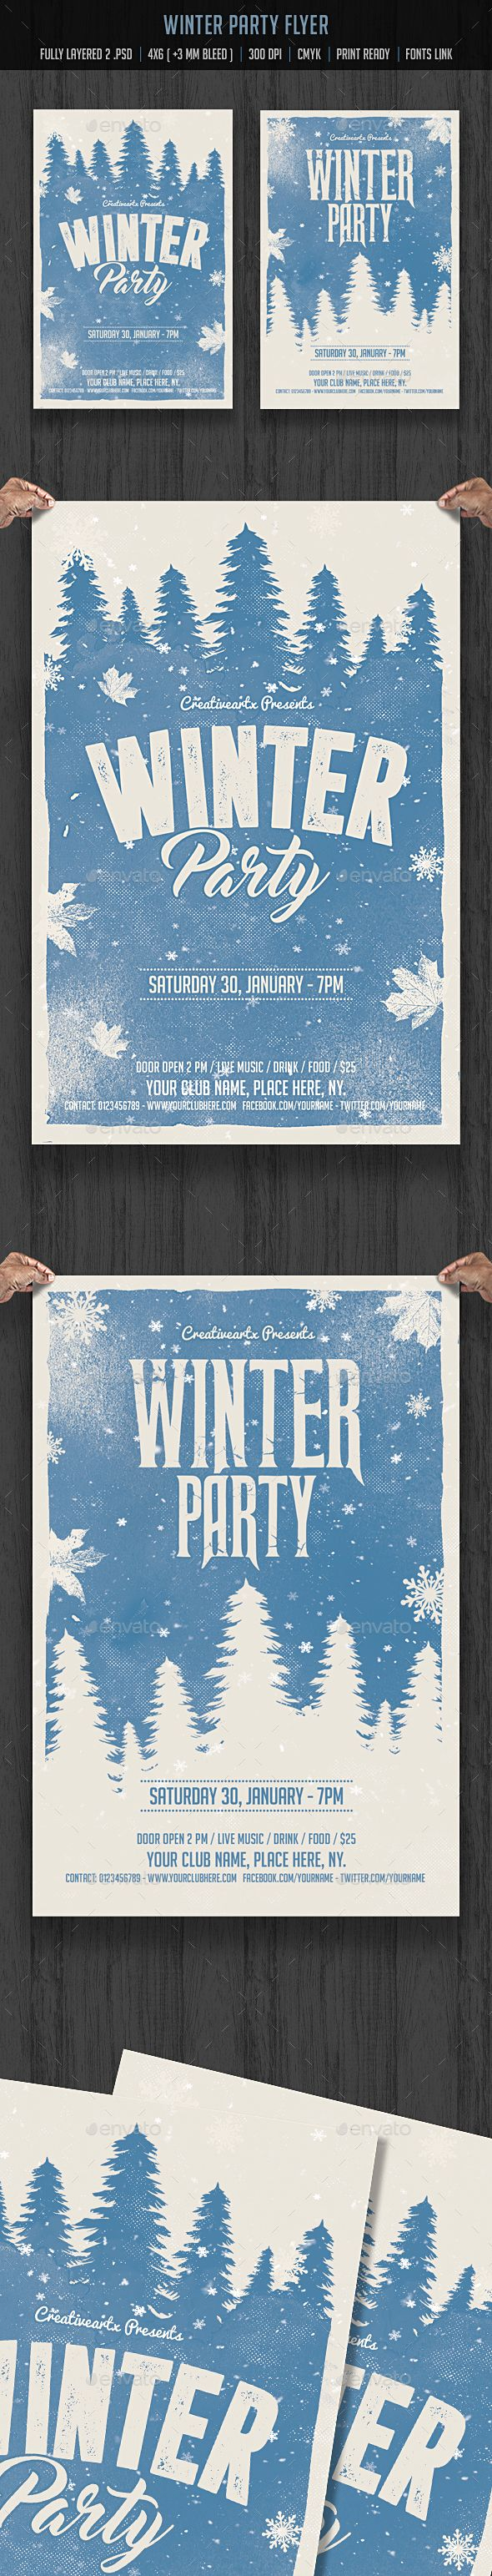 Winter Party Flyer Template PSD                                                                                                                                                                                 More